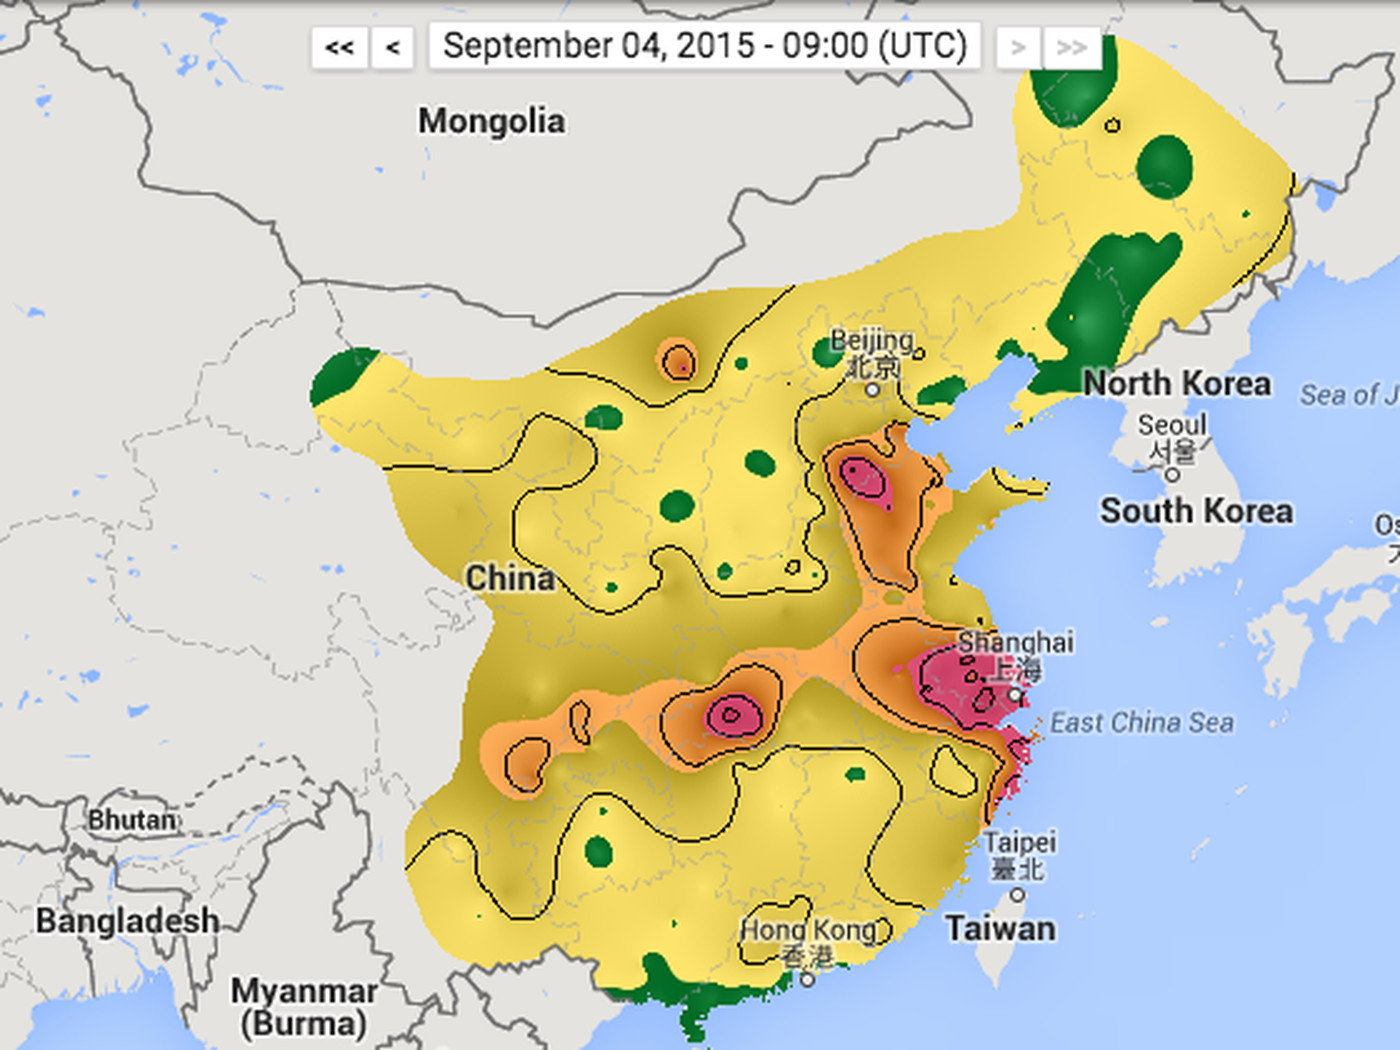 See China's air pollution in real time - The Verge on 2015 map of london, 2015 map of asia, 2015 map of singapore,